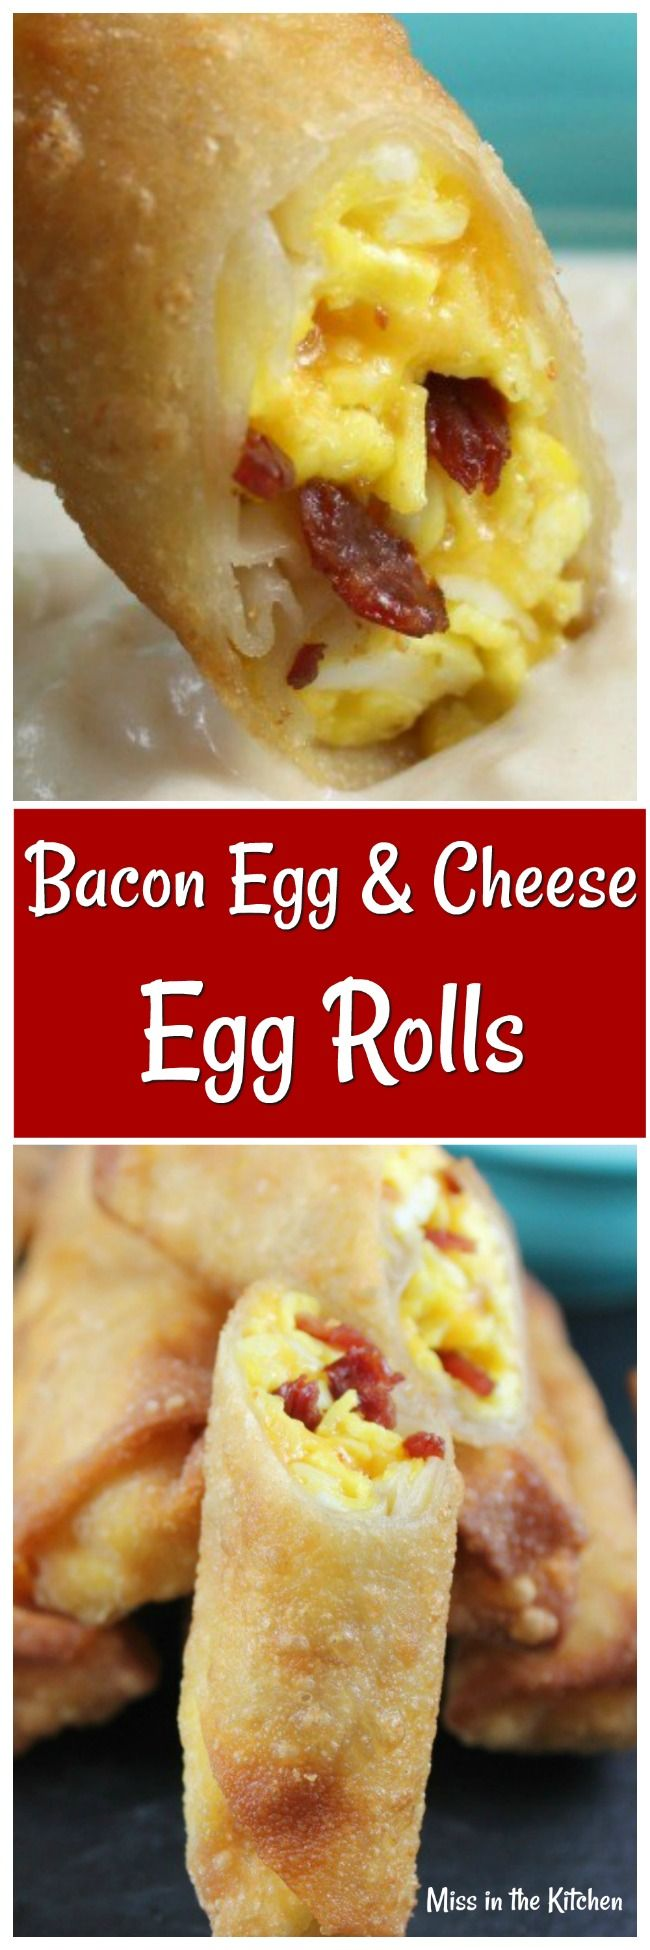 Bacon Egg and Cheese Egg Rolls are going to become your favorite hand-held breakfast treat! Make these crispy fried egg rolls filled with scrambled eggs, cheese and bacon for a delicious and filling breakfast. #breakfast #fried